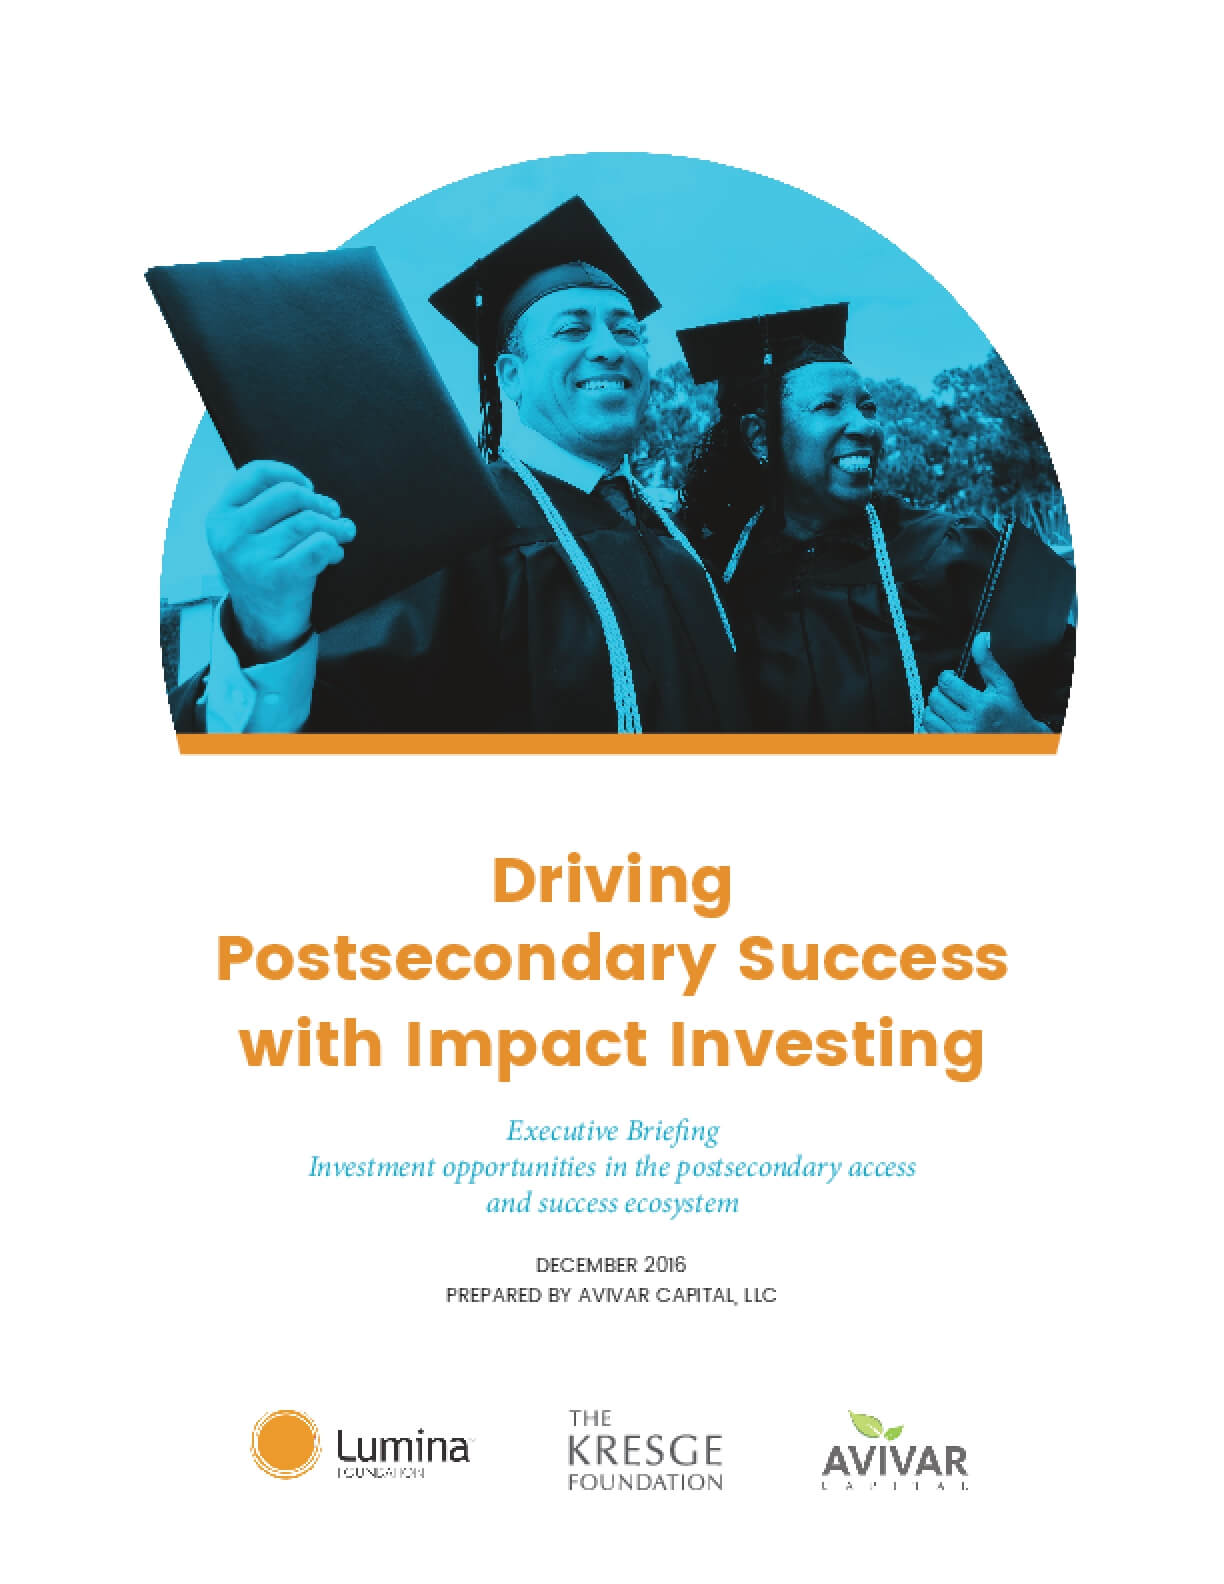 Driving Postsecondary Success with Impact Investing: Executive Briefing Investment Opportunities in the Postsecondary Access and Success Ecosystem, Executive Summary